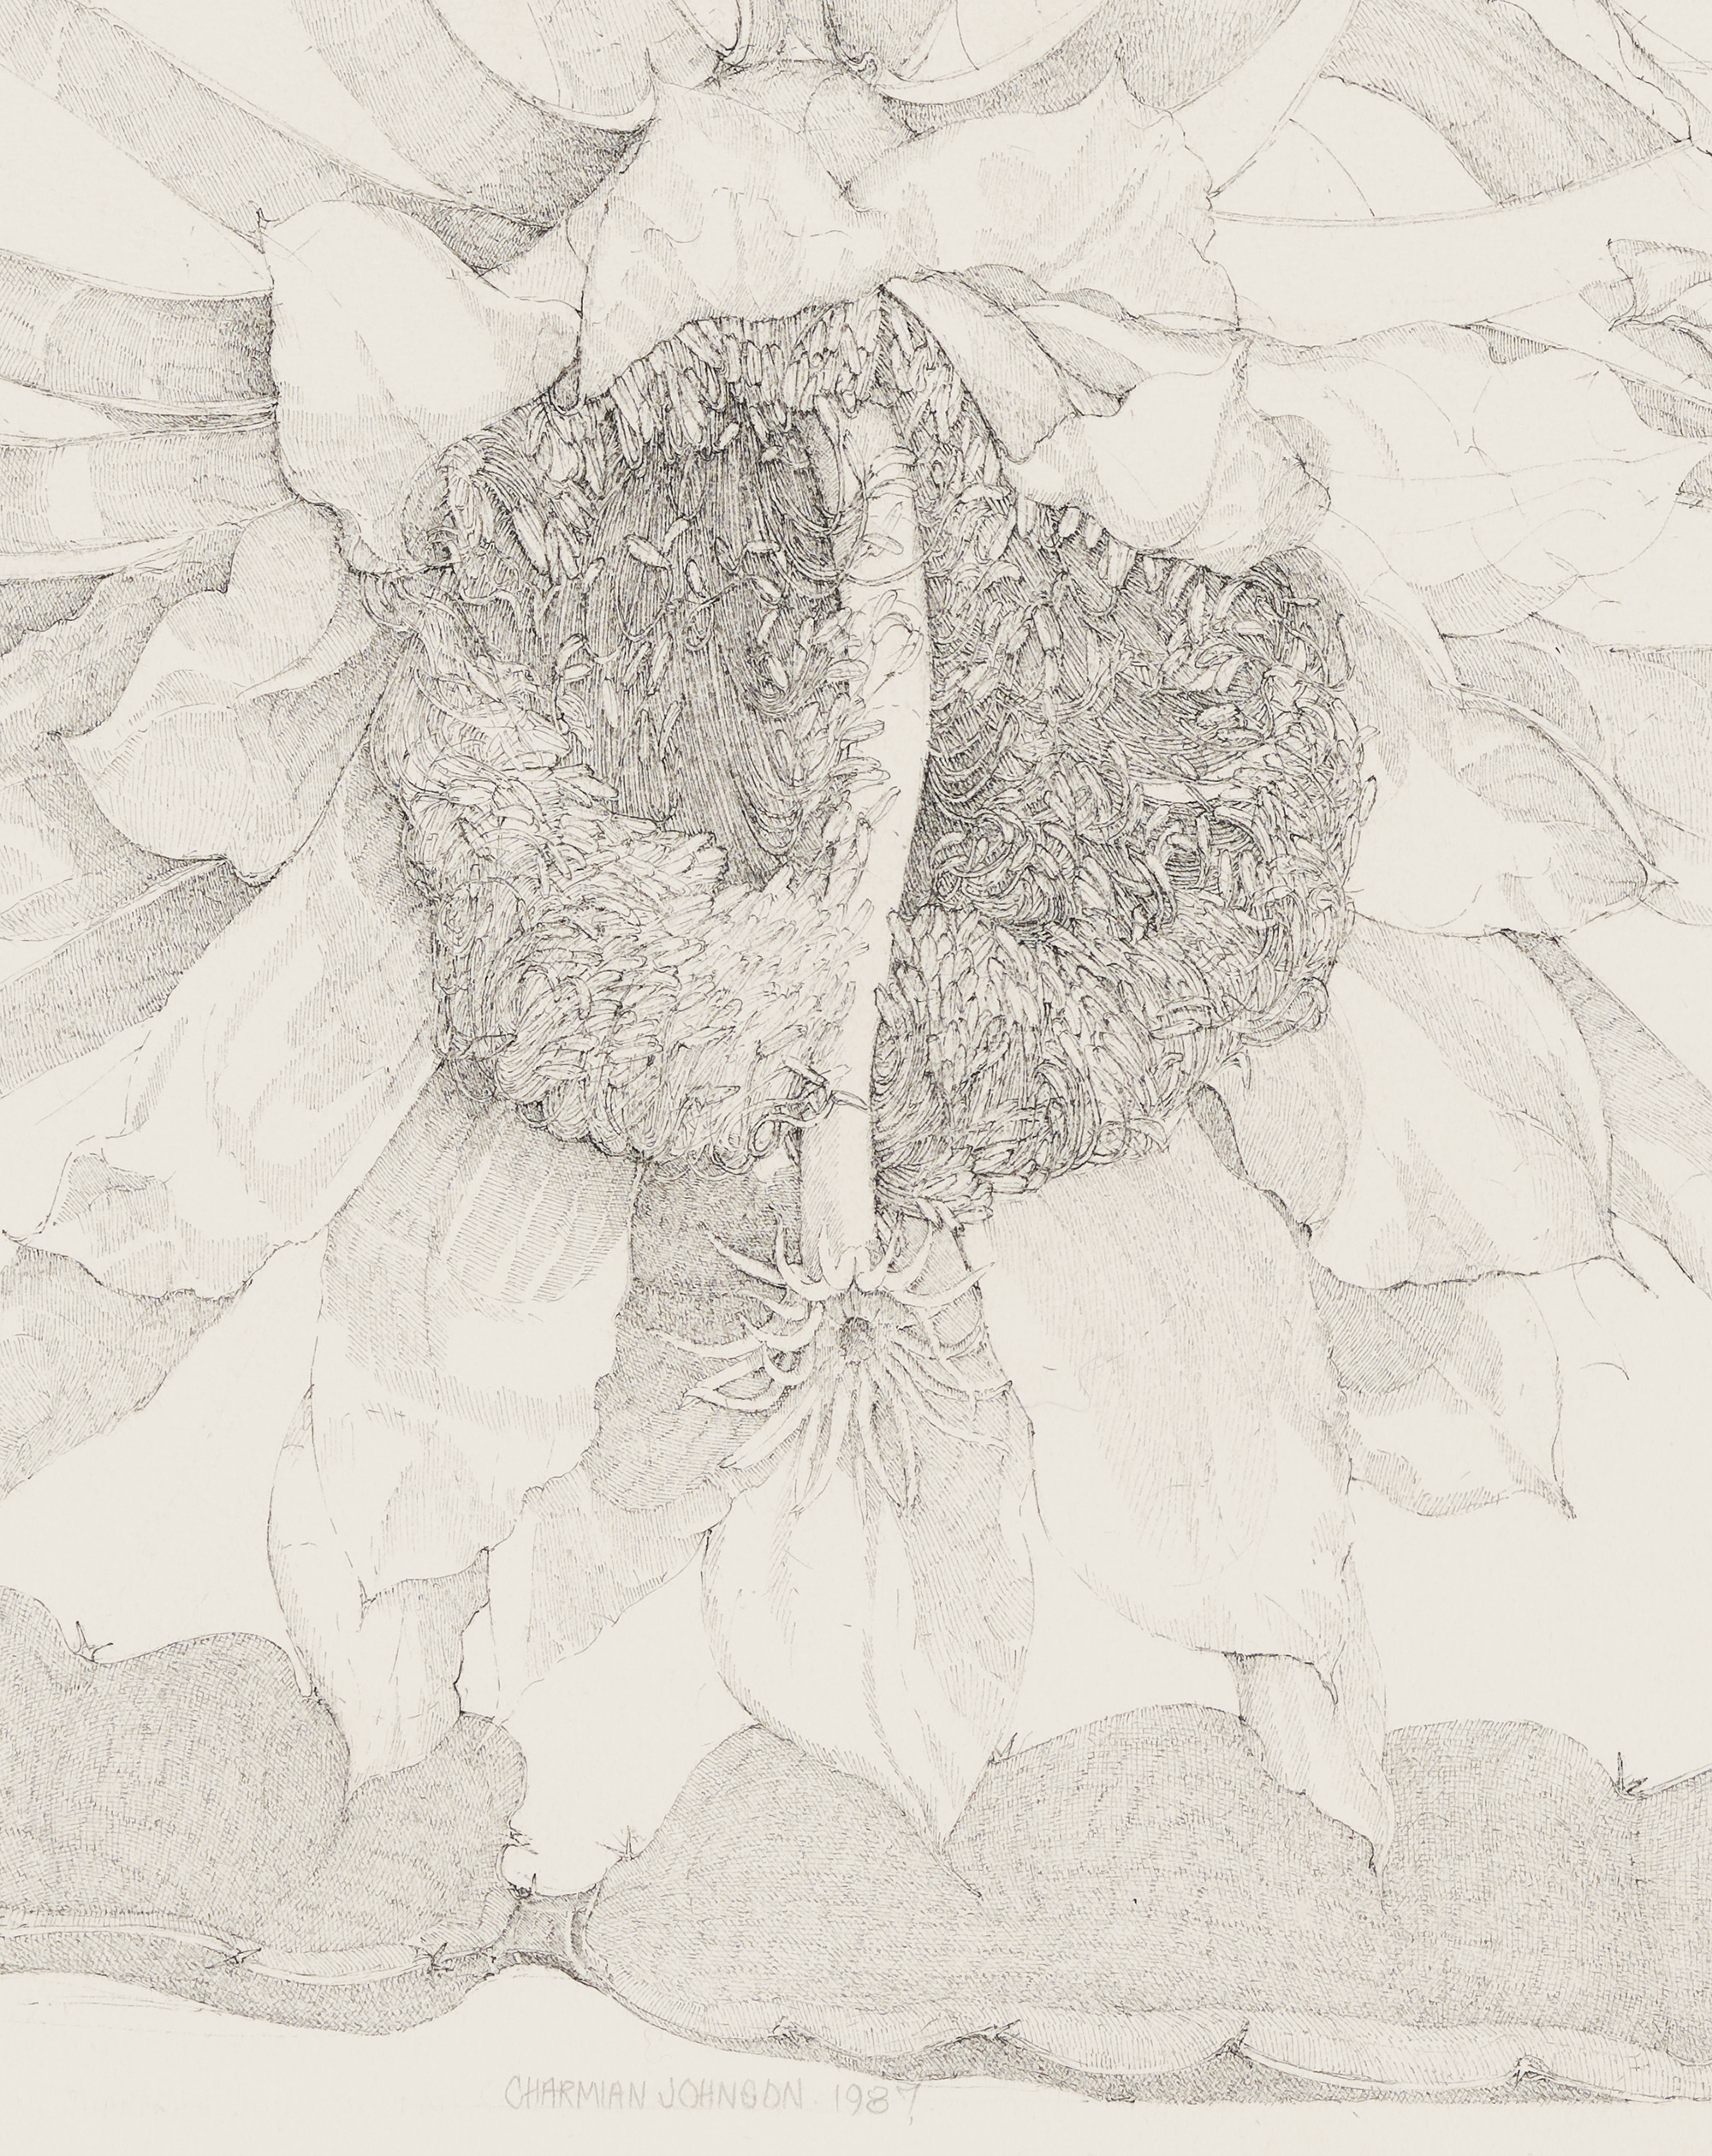 Charmian Johnson, Night-Blooming Cereus; Hylocereus Undatus (detail), 1987, ink on paper, 26 x 30 in. (65 x 76 cm) by